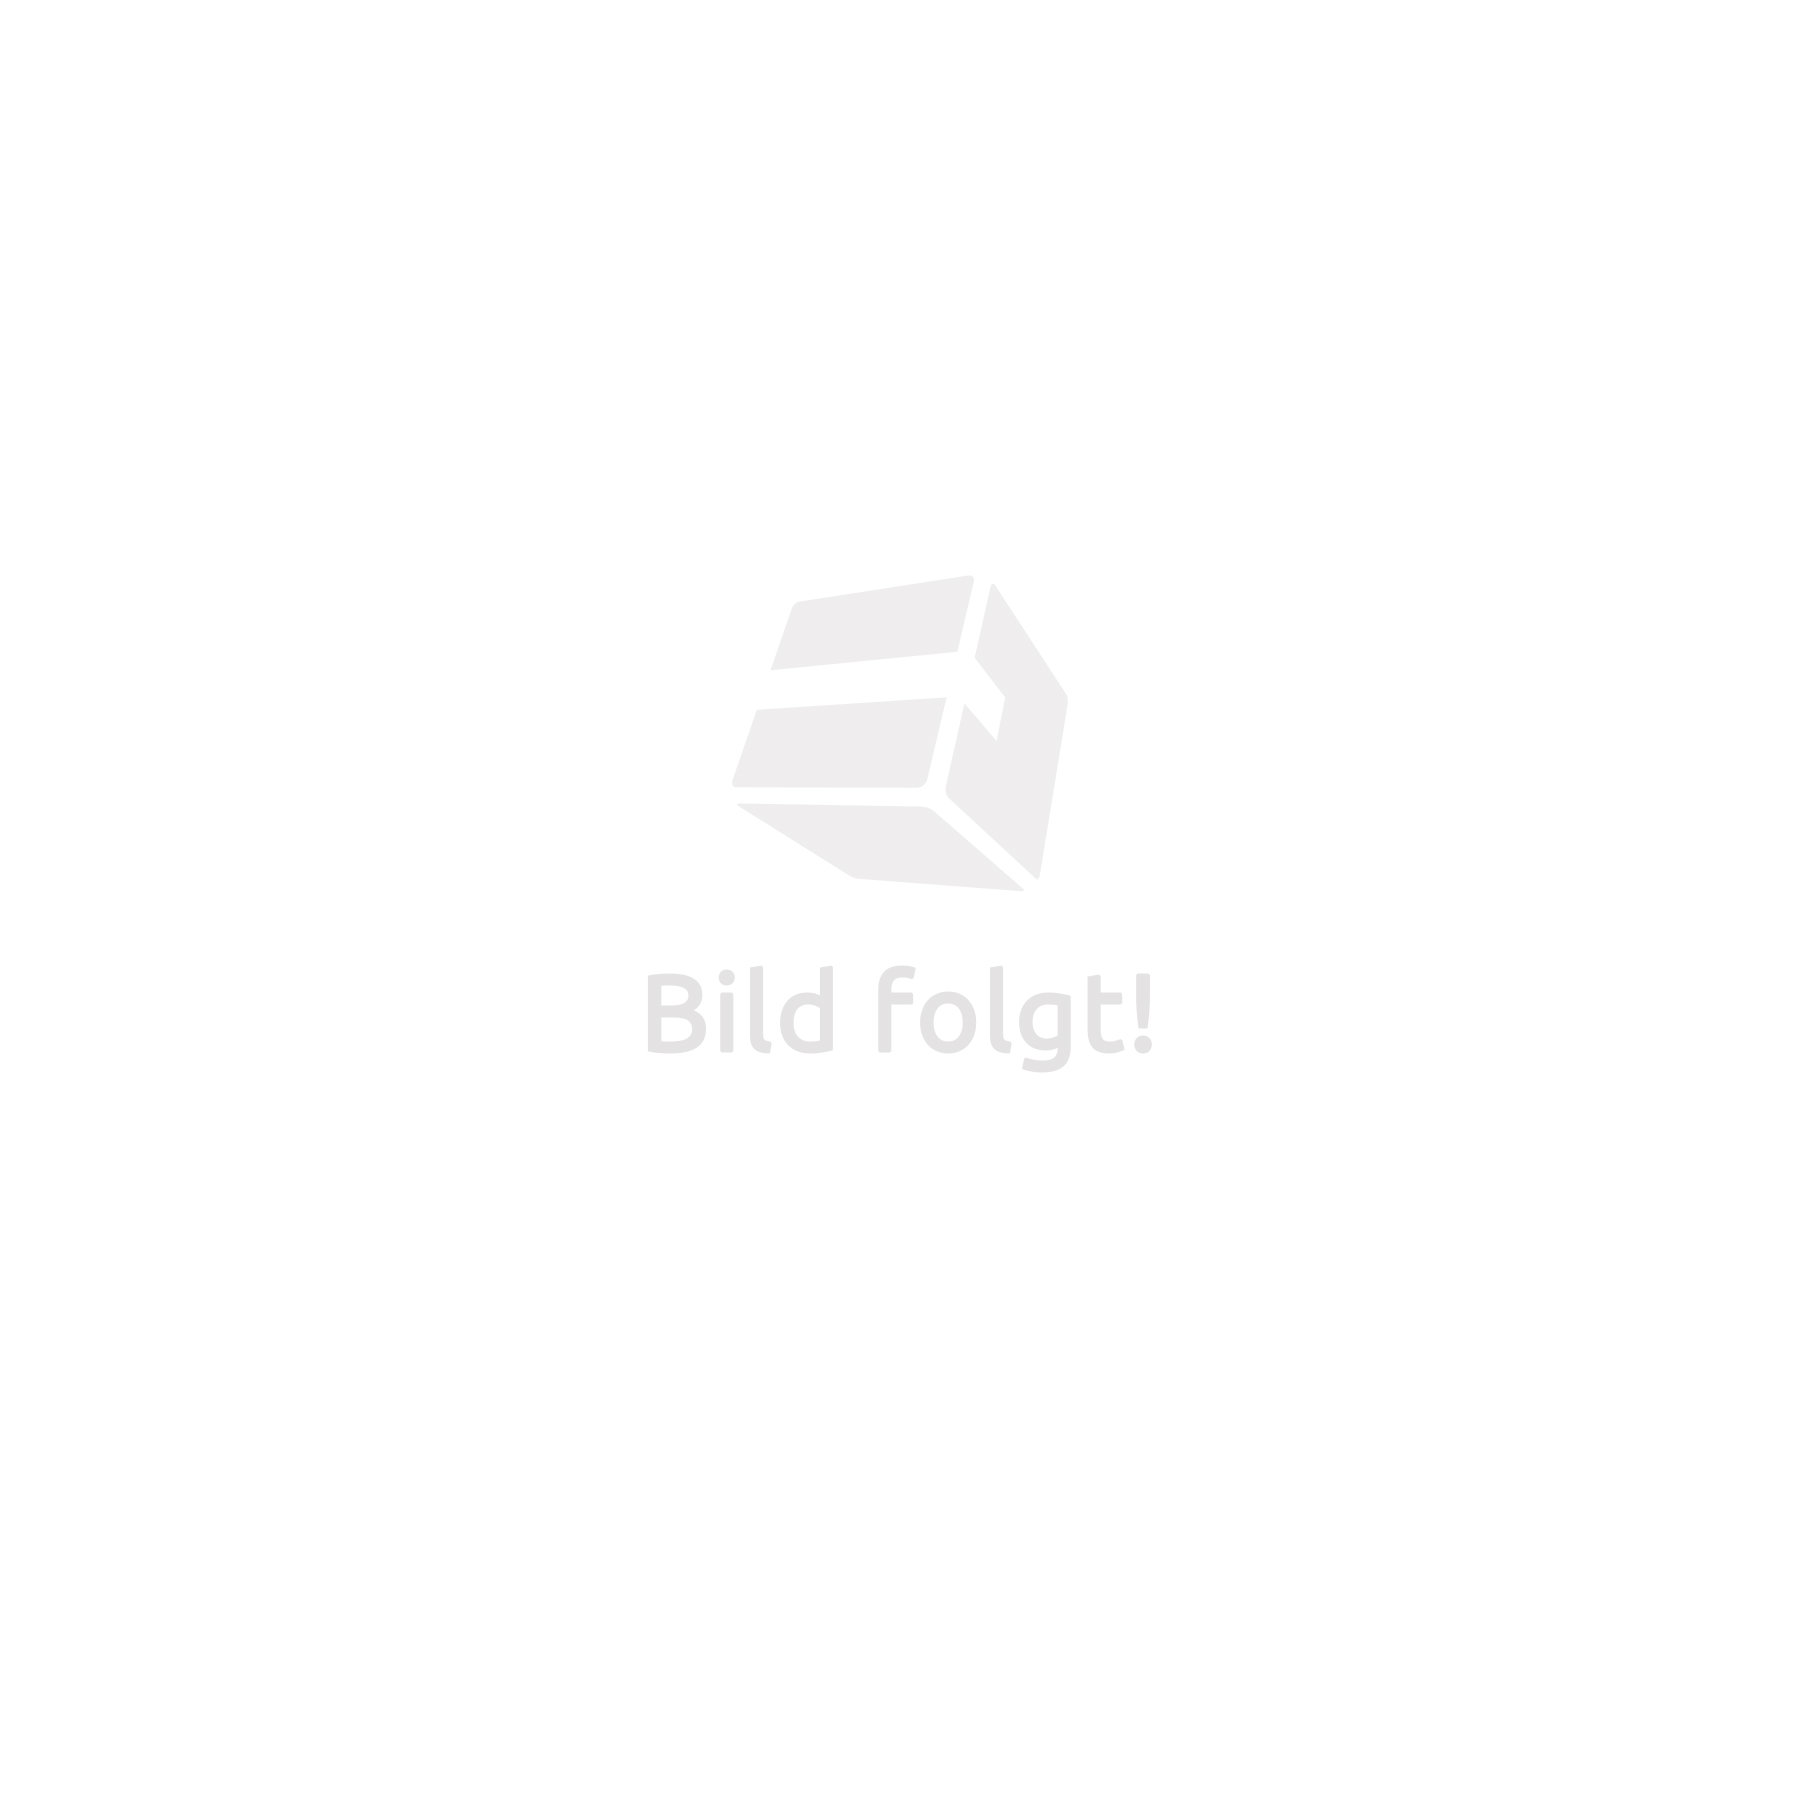 Filing Cabinet with 3 Shelves